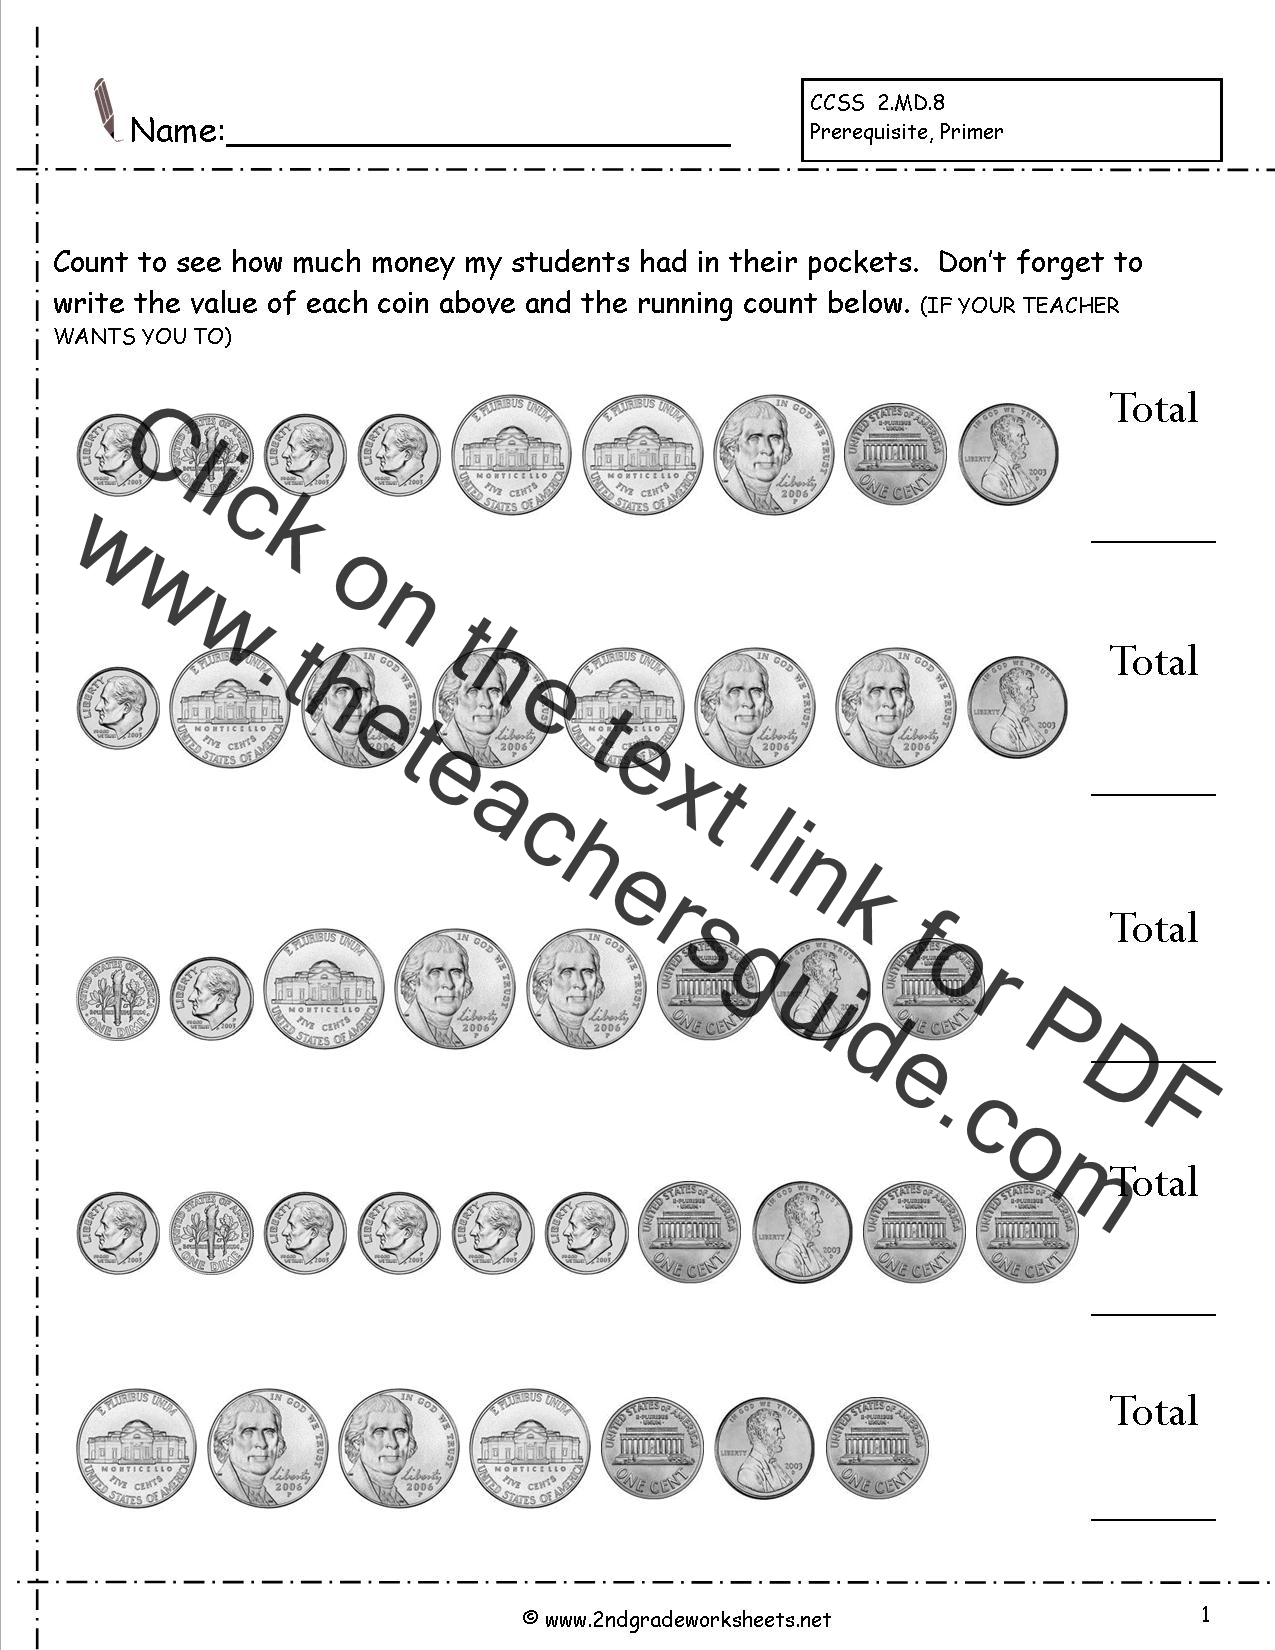 Counting Coins and Money Worksheets and Printouts – Skip Counting Worksheets 2nd Grade